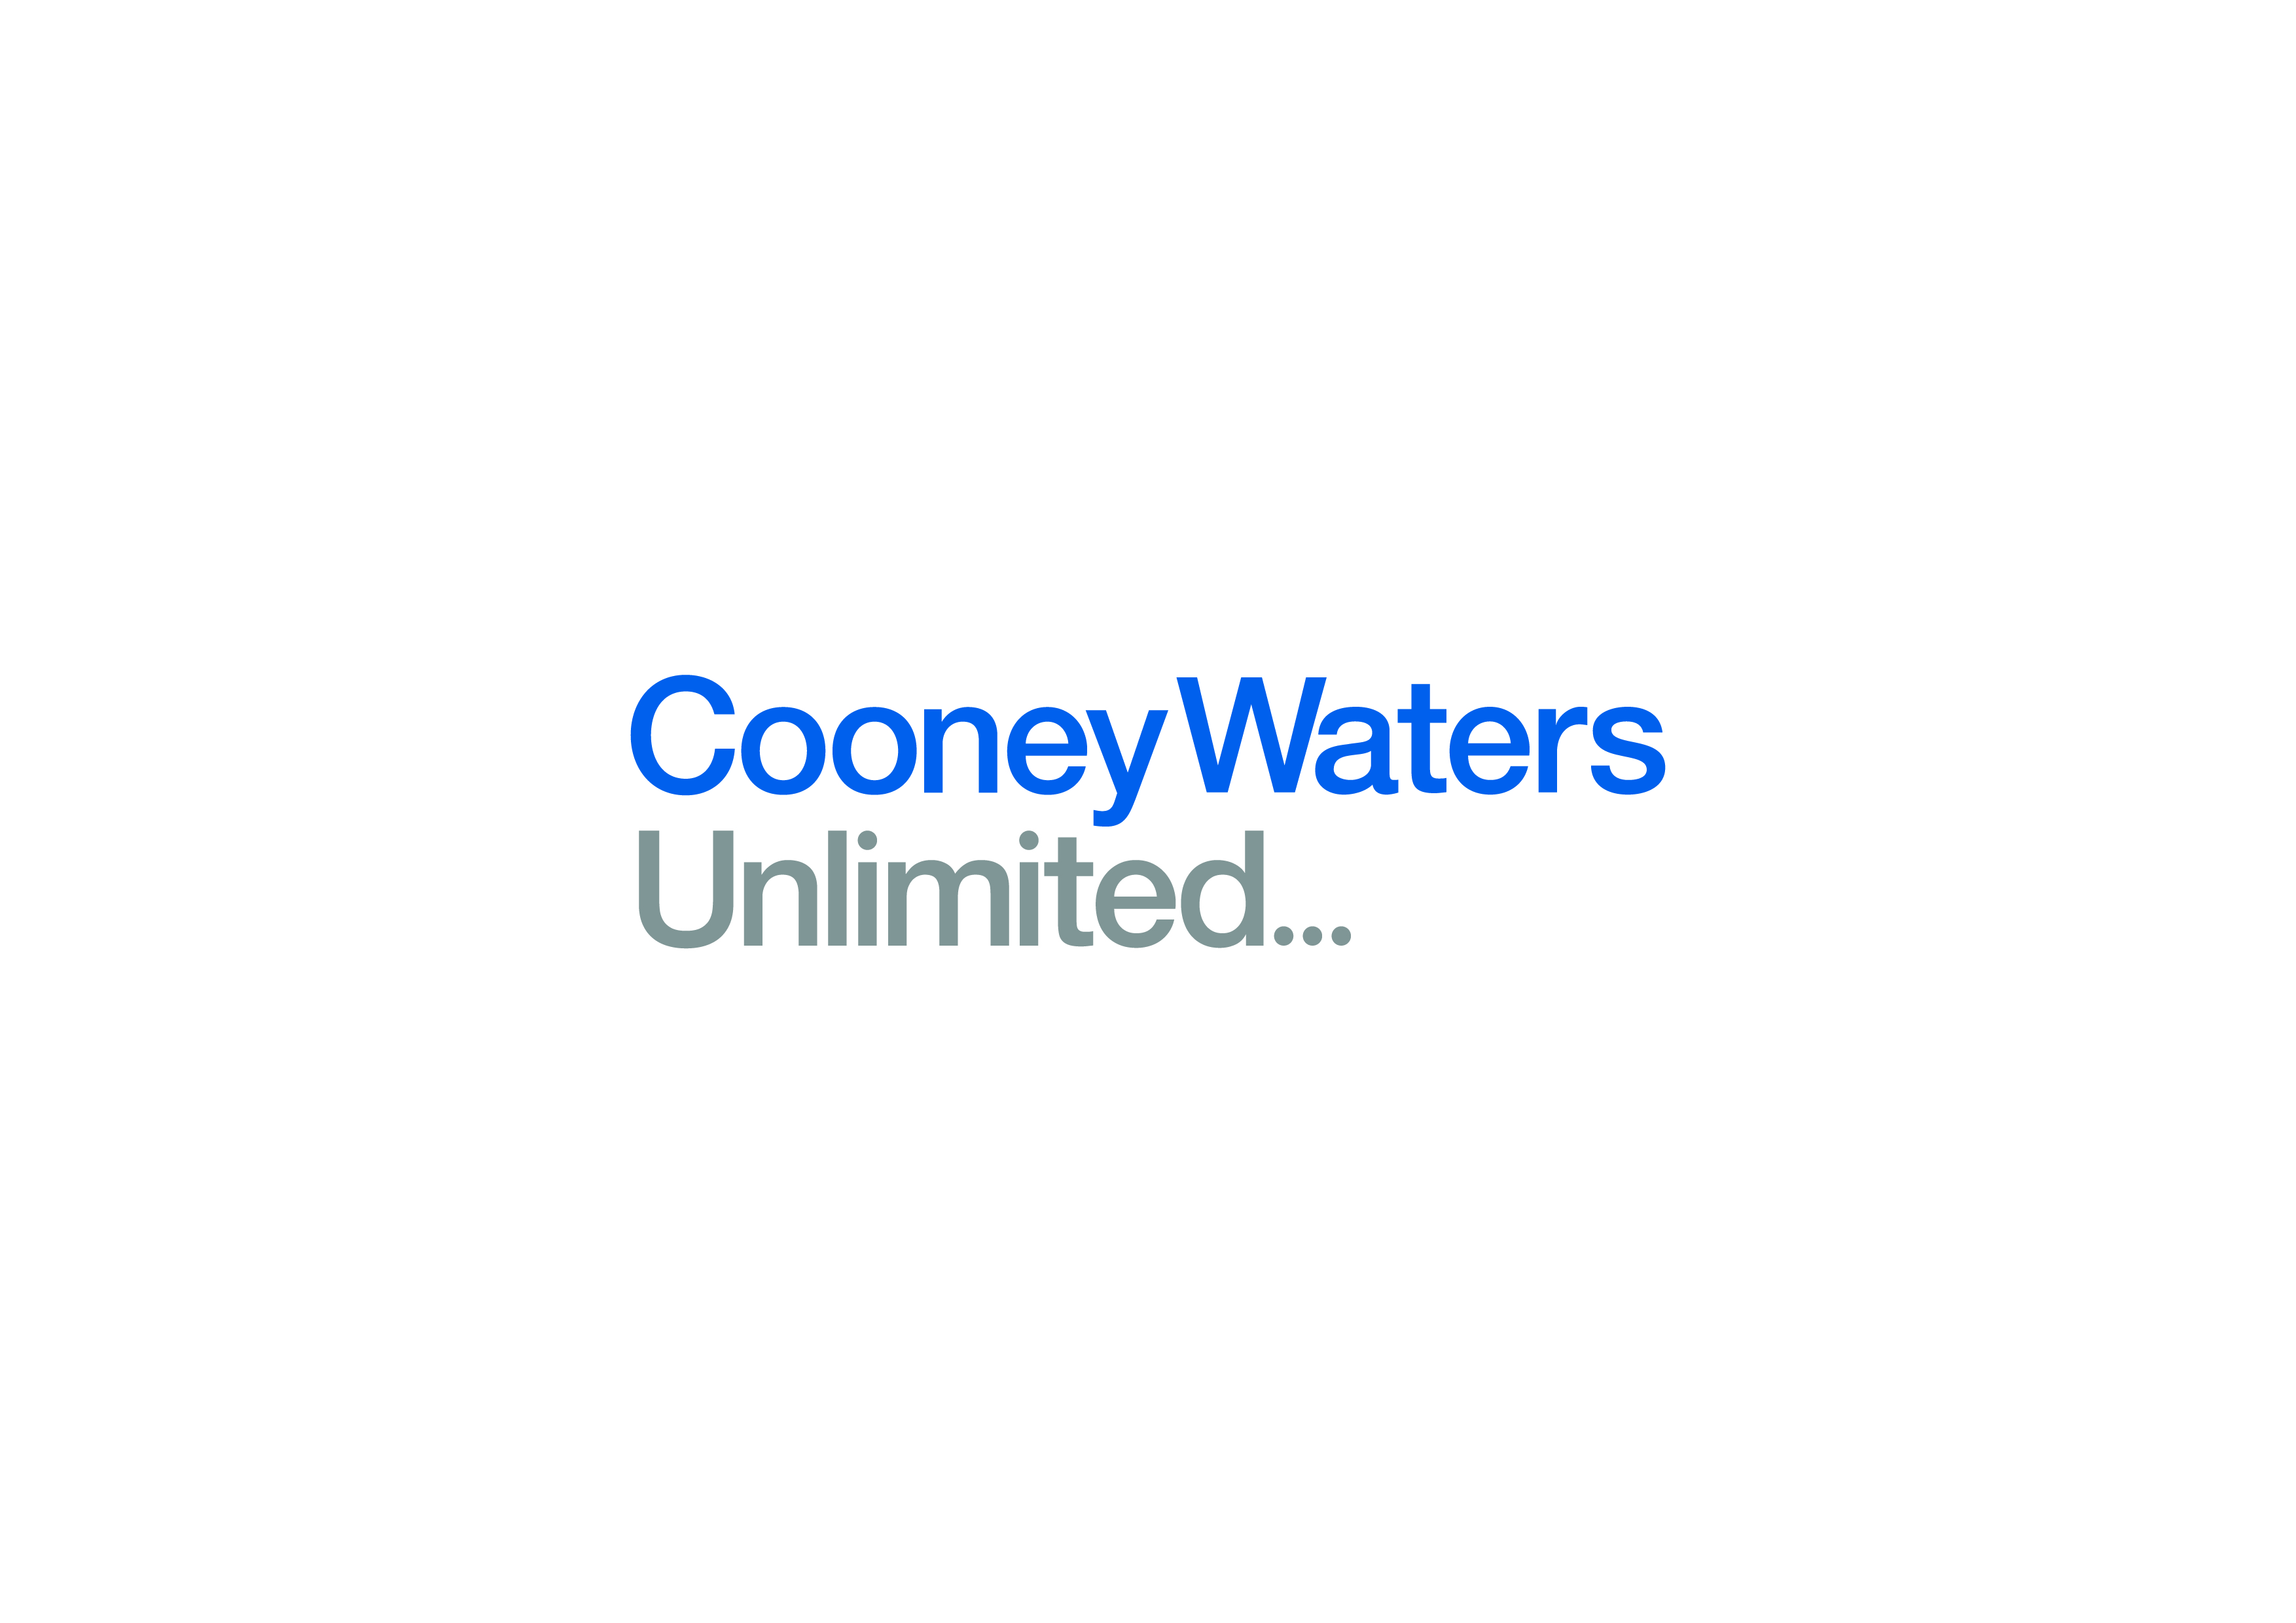 Cooney Waters Unlimited